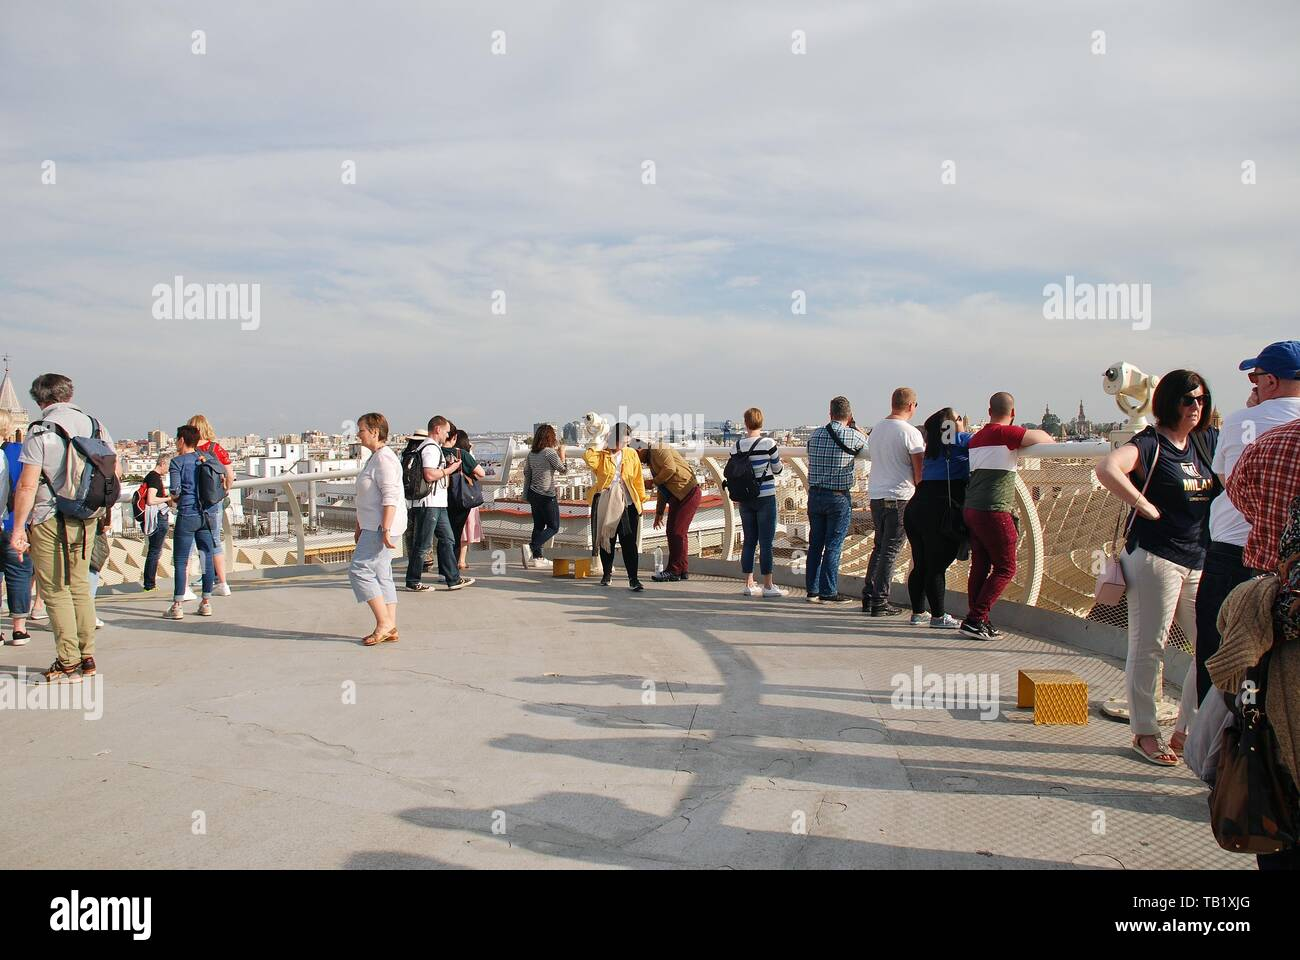 People stand on the viewing platform on the roof of the Metropol Parasol in Seville, Spain on April 2, 2019. Stock Photo